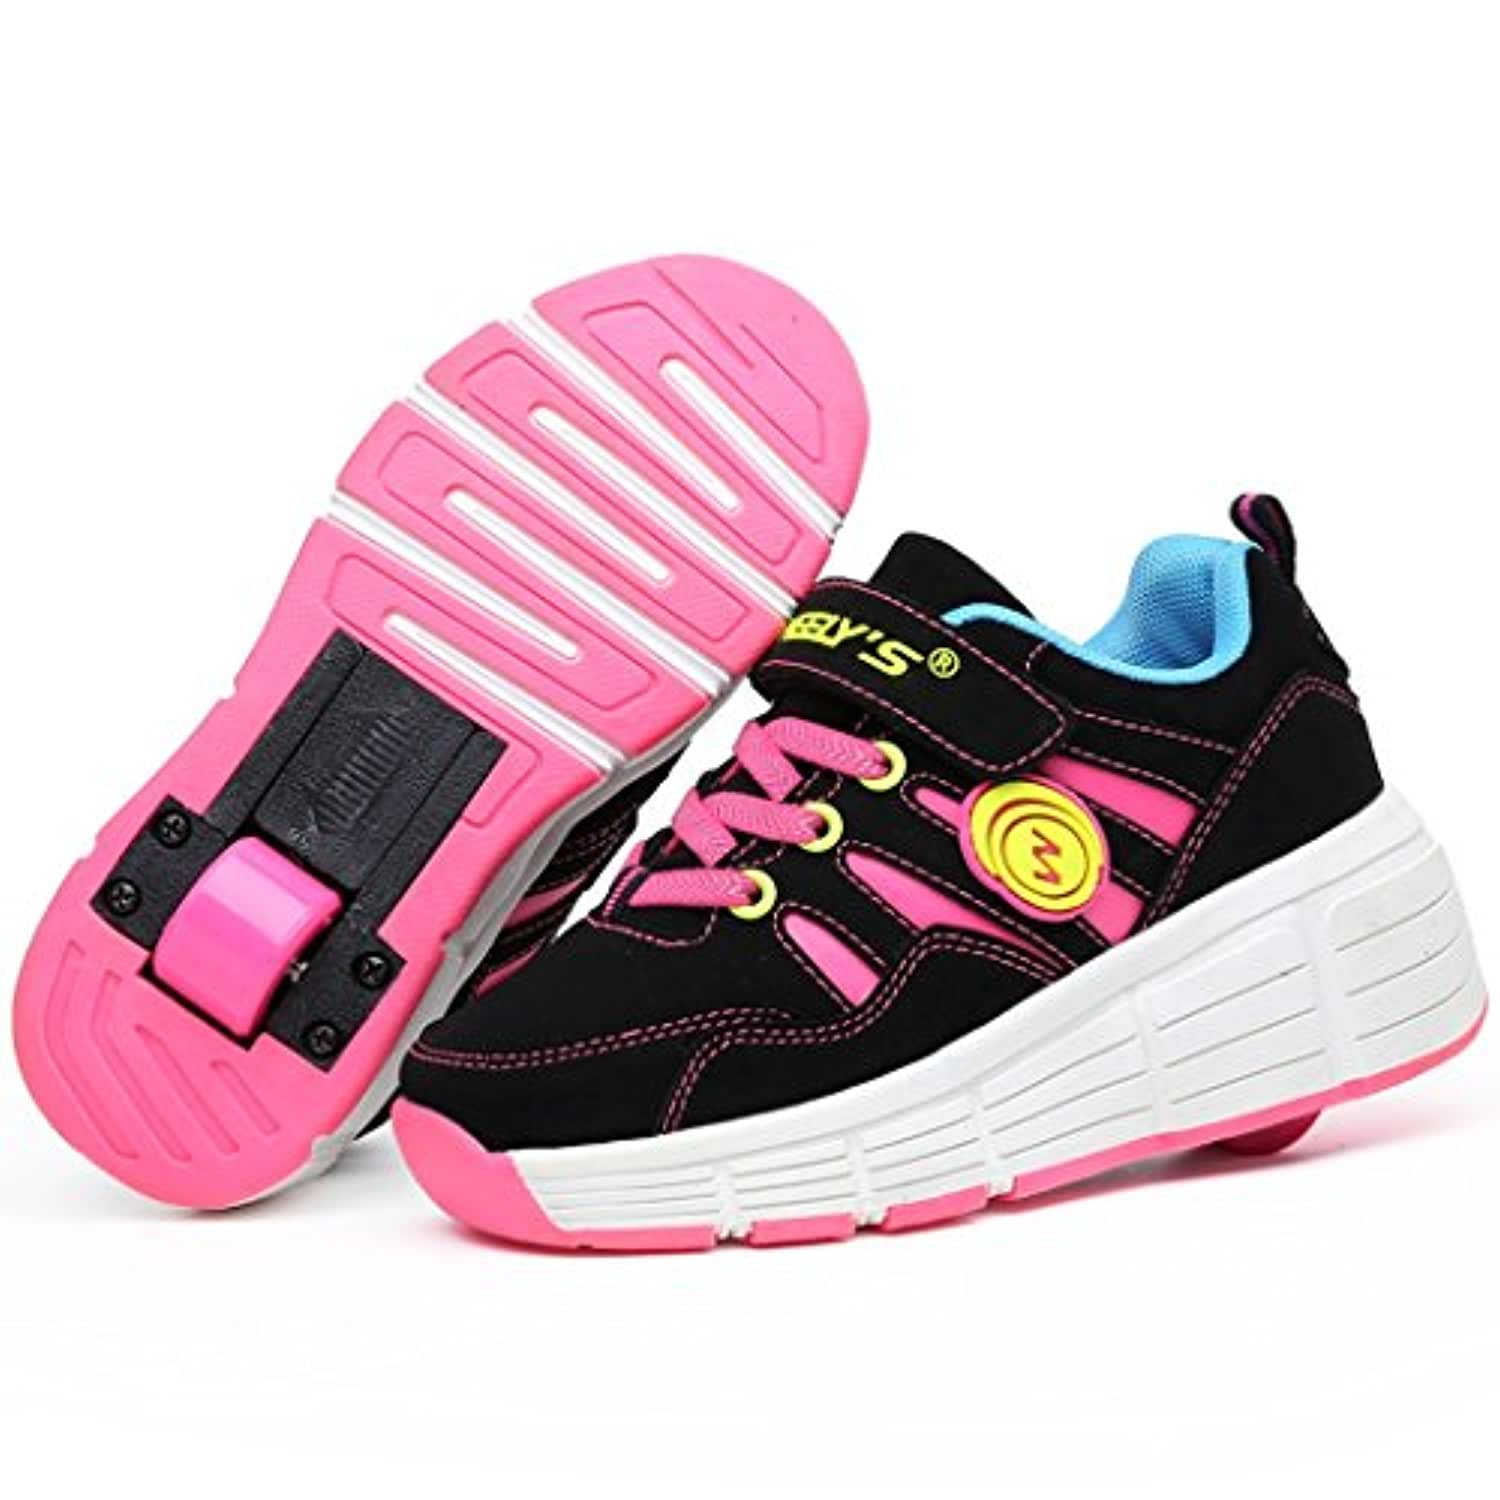 Roller skate trainers / sneakers with automatic wheels - Pink - UK 2 - EU 34